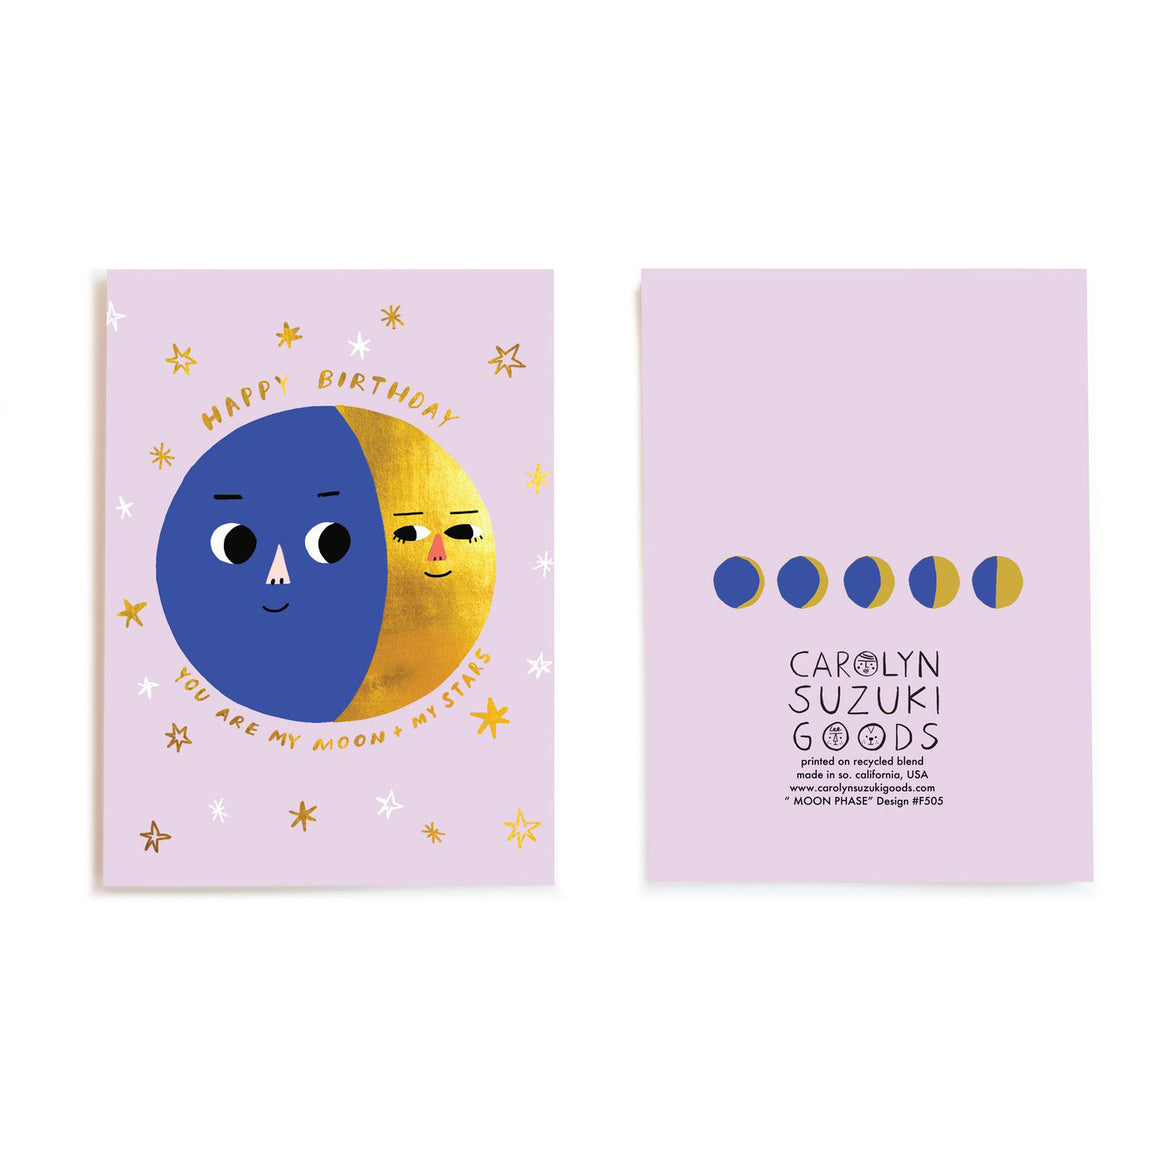 Carolyn Suzuki Goods: Moon Phases - Foil